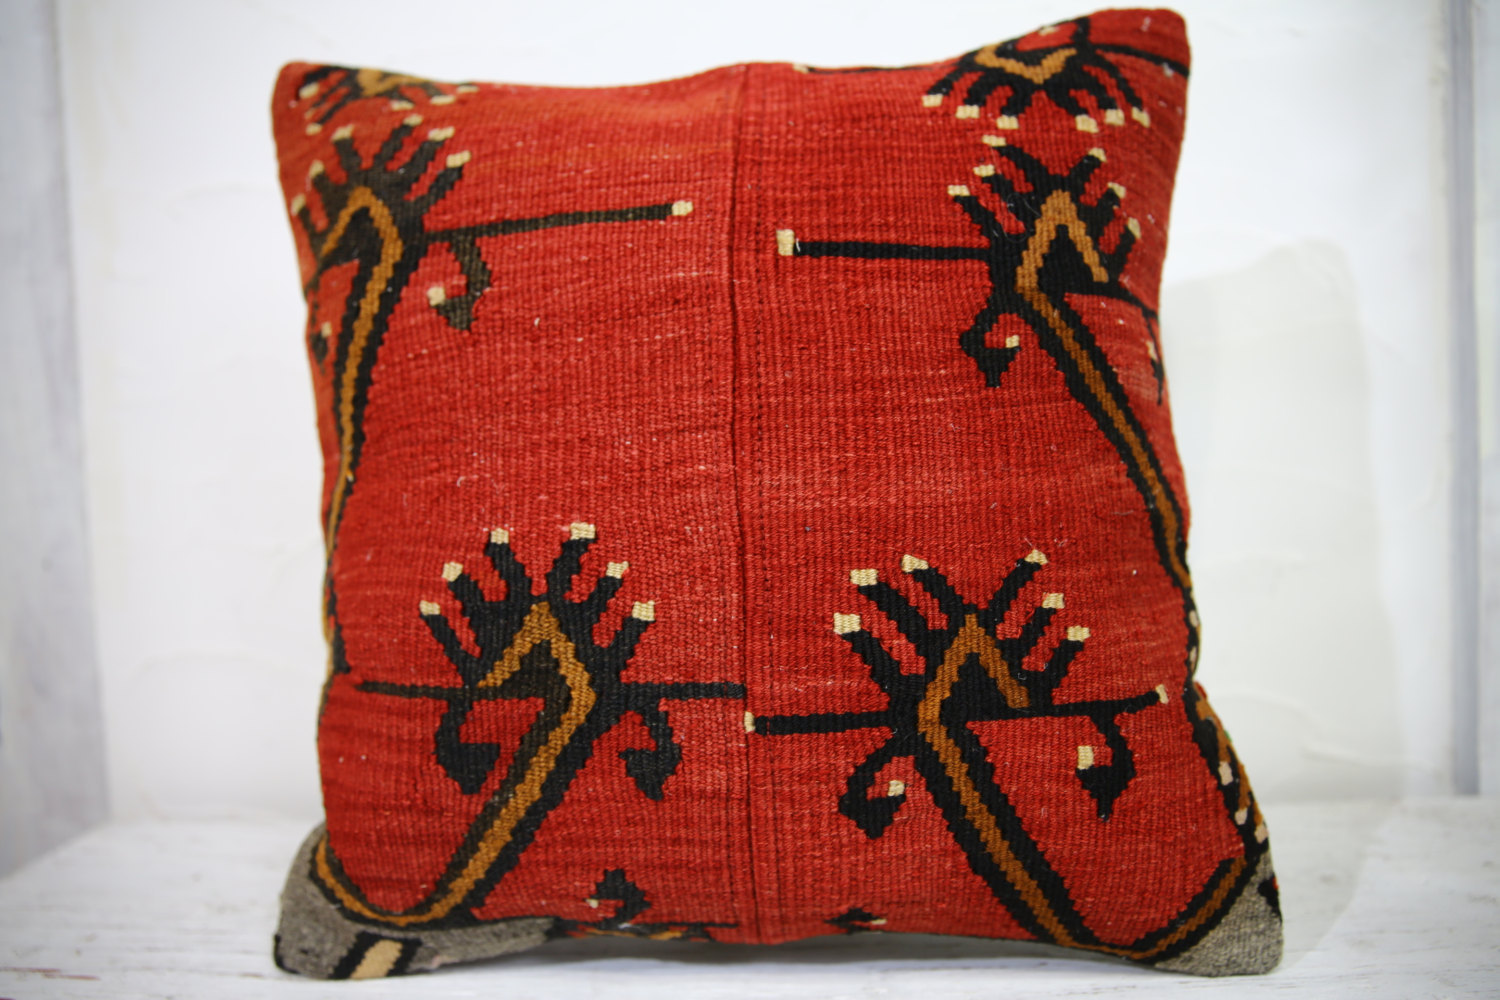 Kilim Pillows | 18x18 | Decorative Pillows | 1016 | Accent Pillows, throw pillow